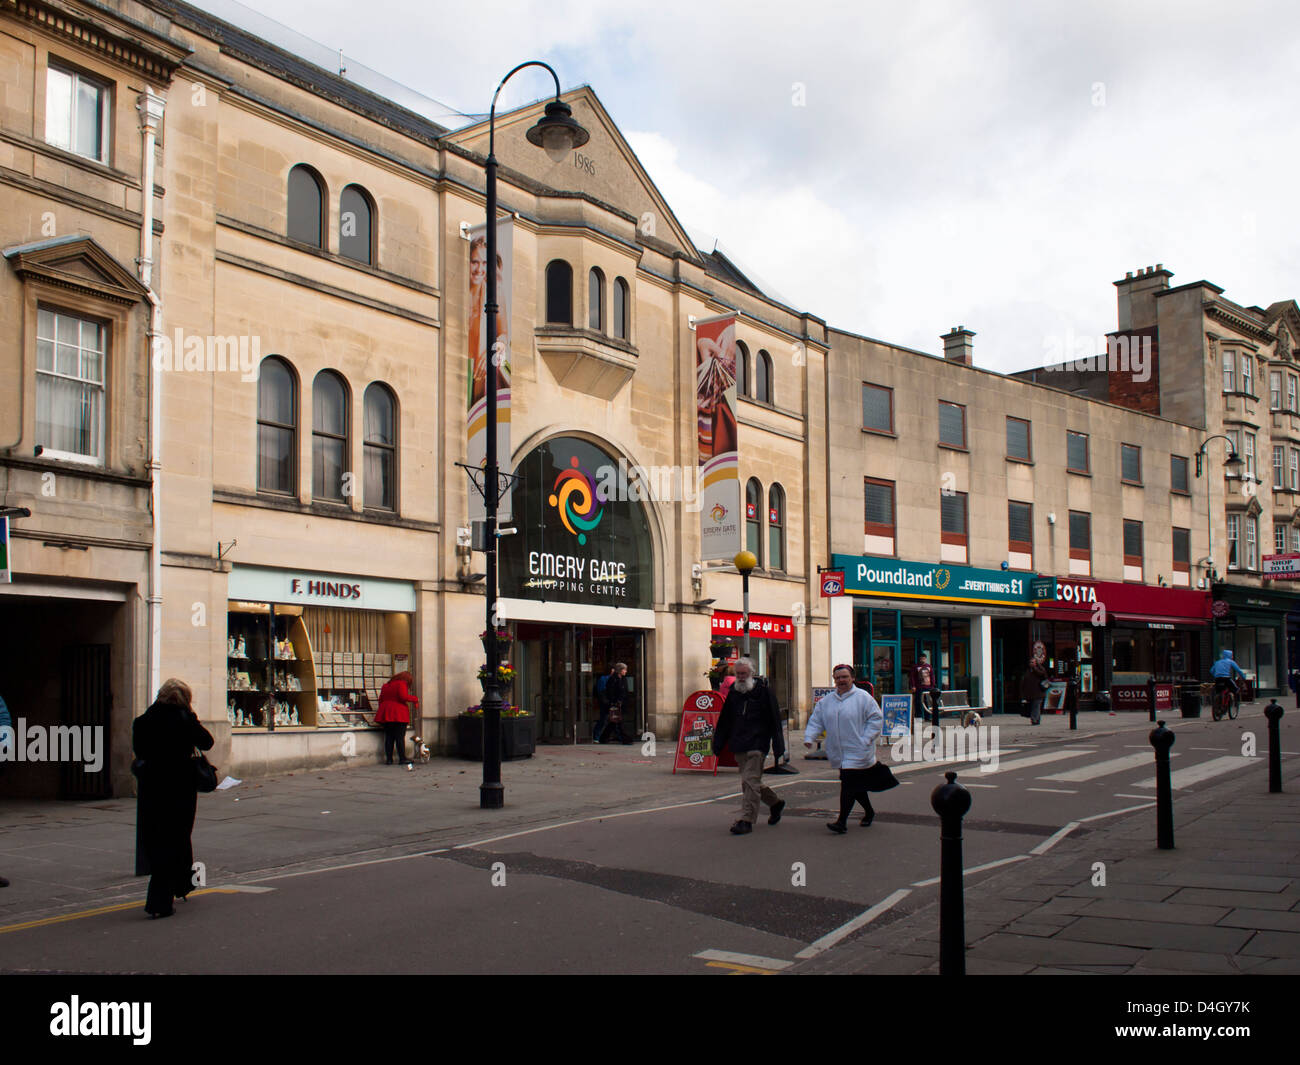 Chippenham, in Wiltshire England UK The Emery Gate shopping center. - Stock Image